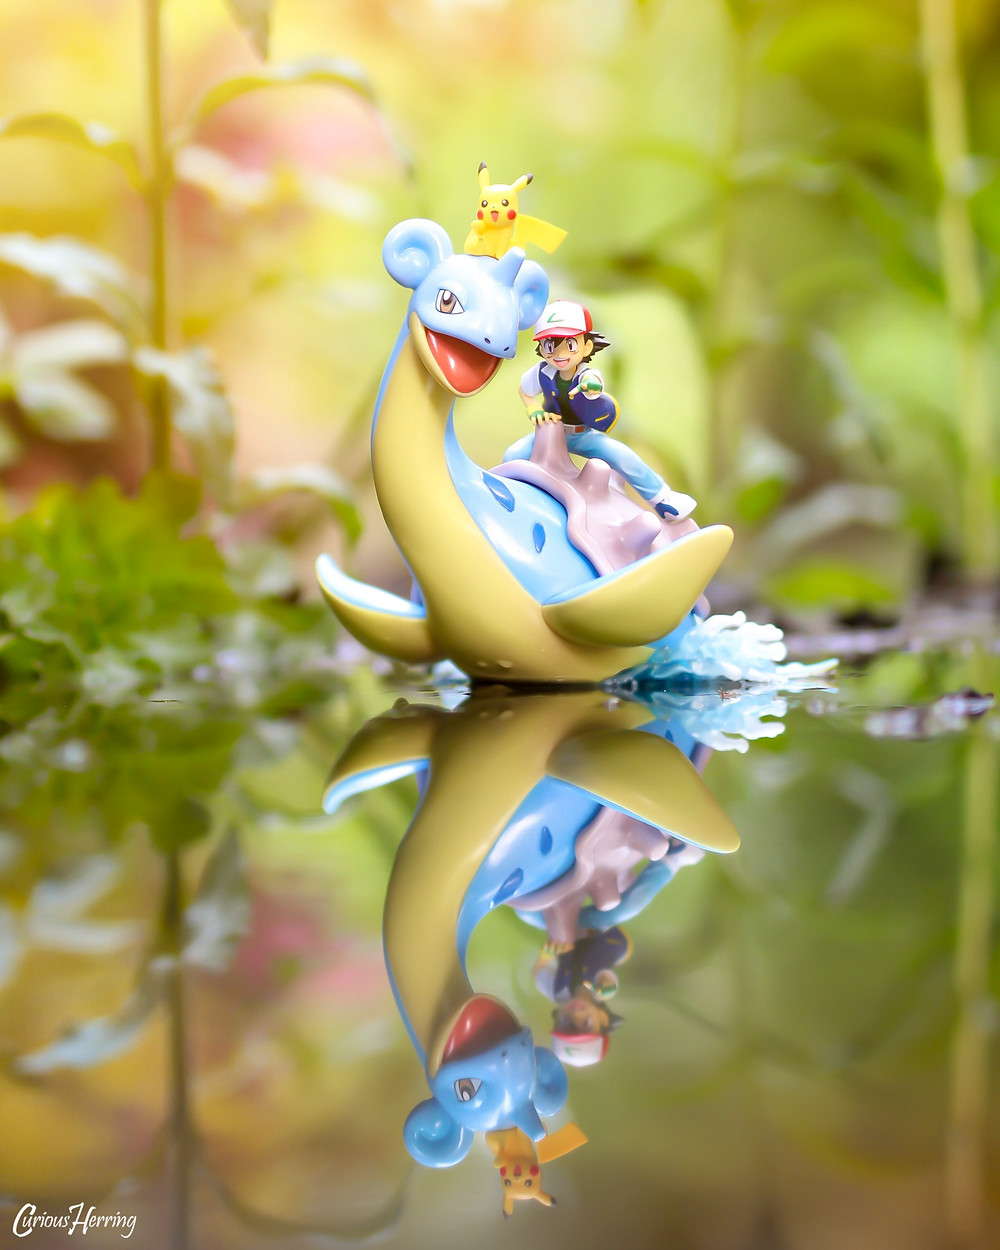 Toy Photography by CuriousHerring of Lapras, Ash and Pikachu swimming across the lake. This image features the G.E.M. Pokemon series statue from Nintendo, using soft focus to blur out the background, with a large focus on the figure and water reflection.